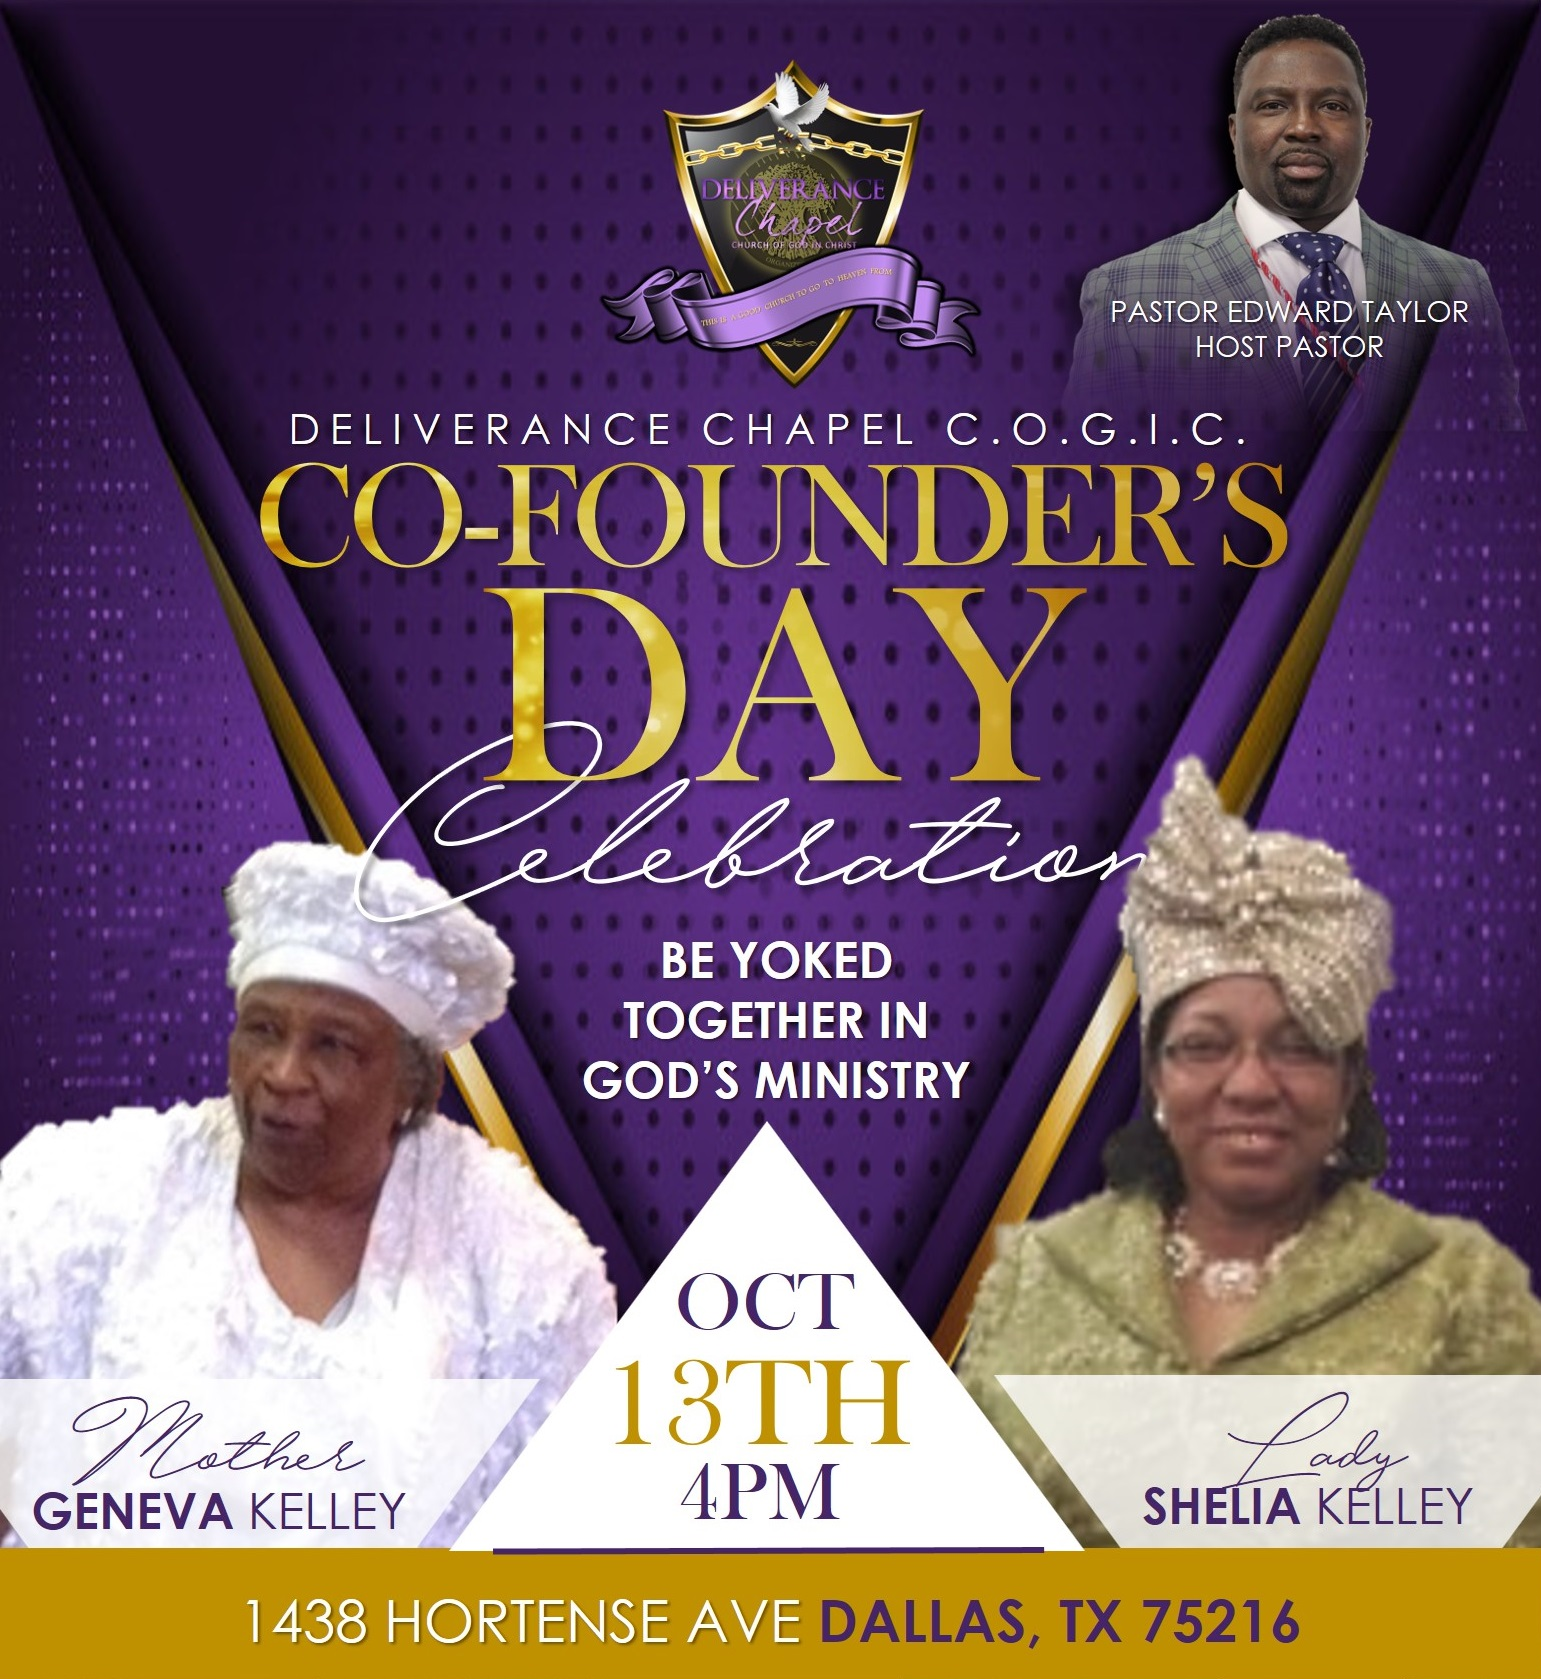 Co-Founder's Day